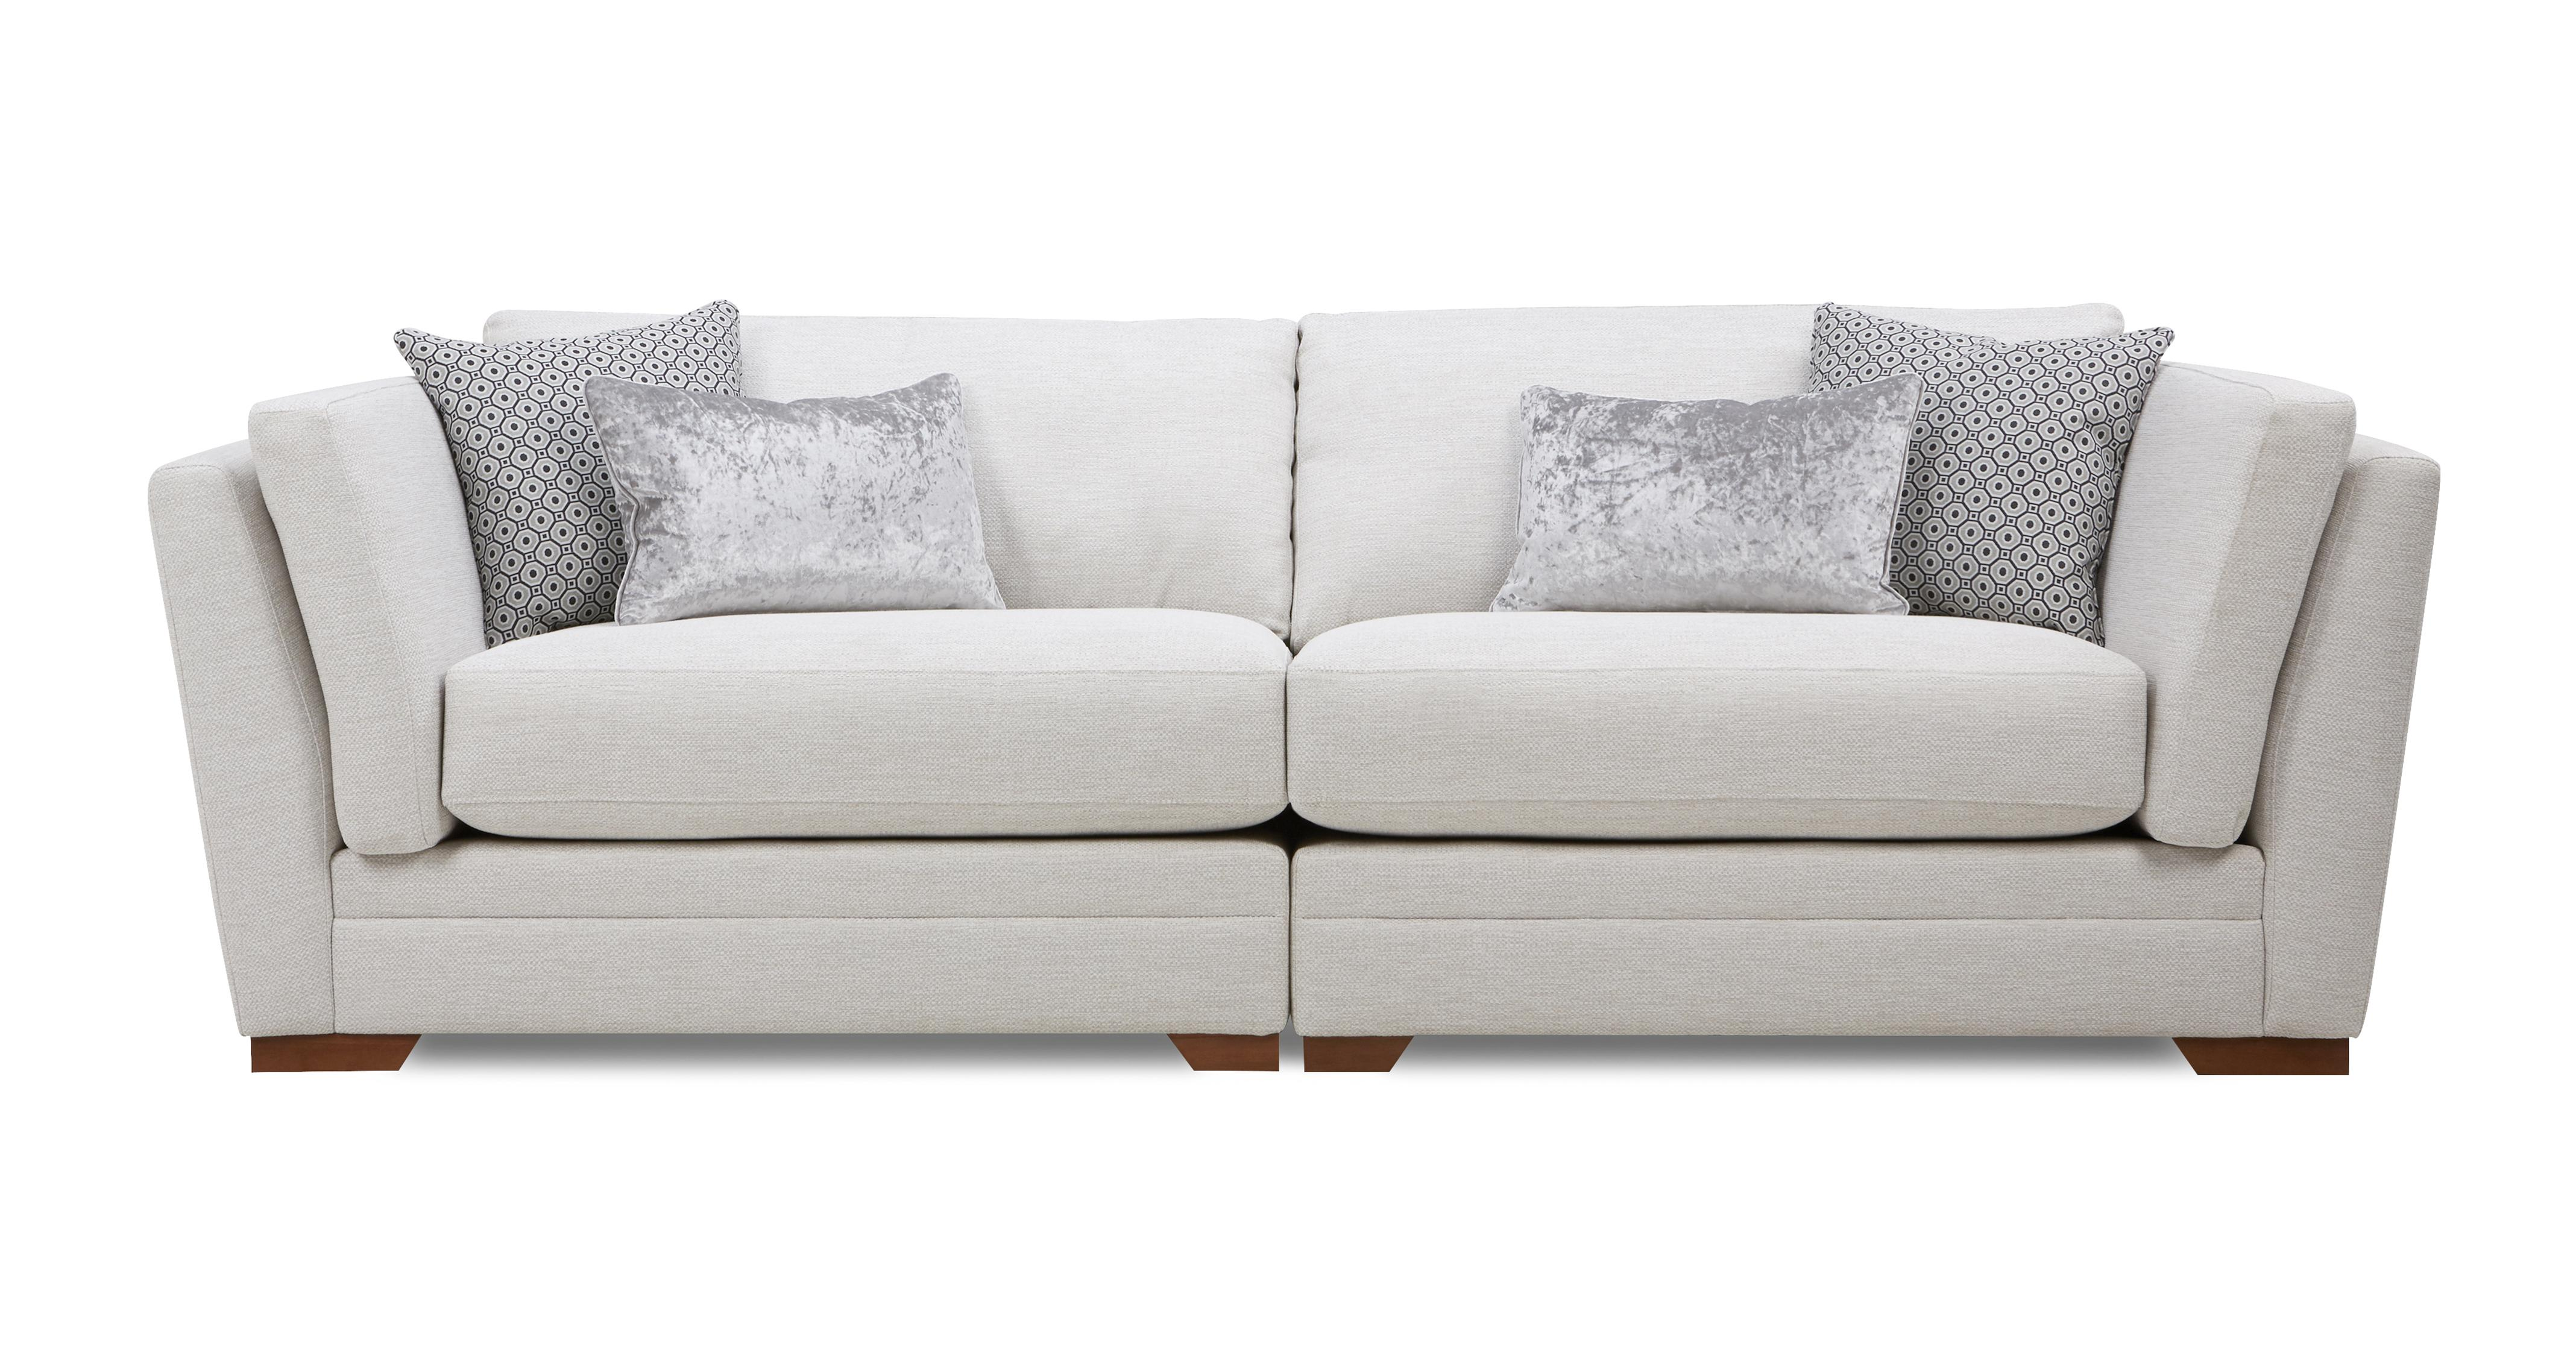 Incroyable Long Beach Large Sofa | DFS Ireland